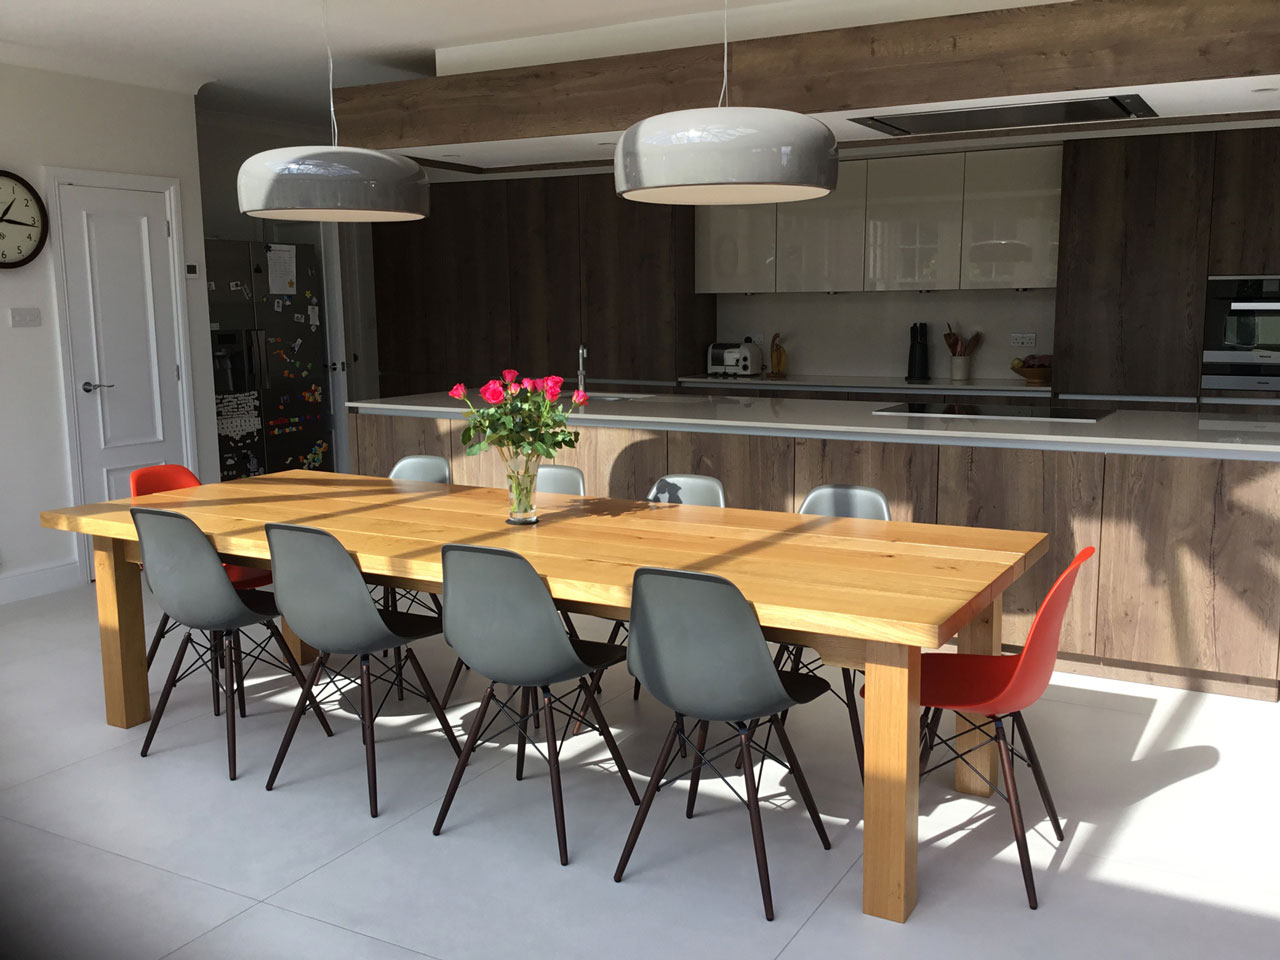 Farmhouse-dining-table-375-pic1